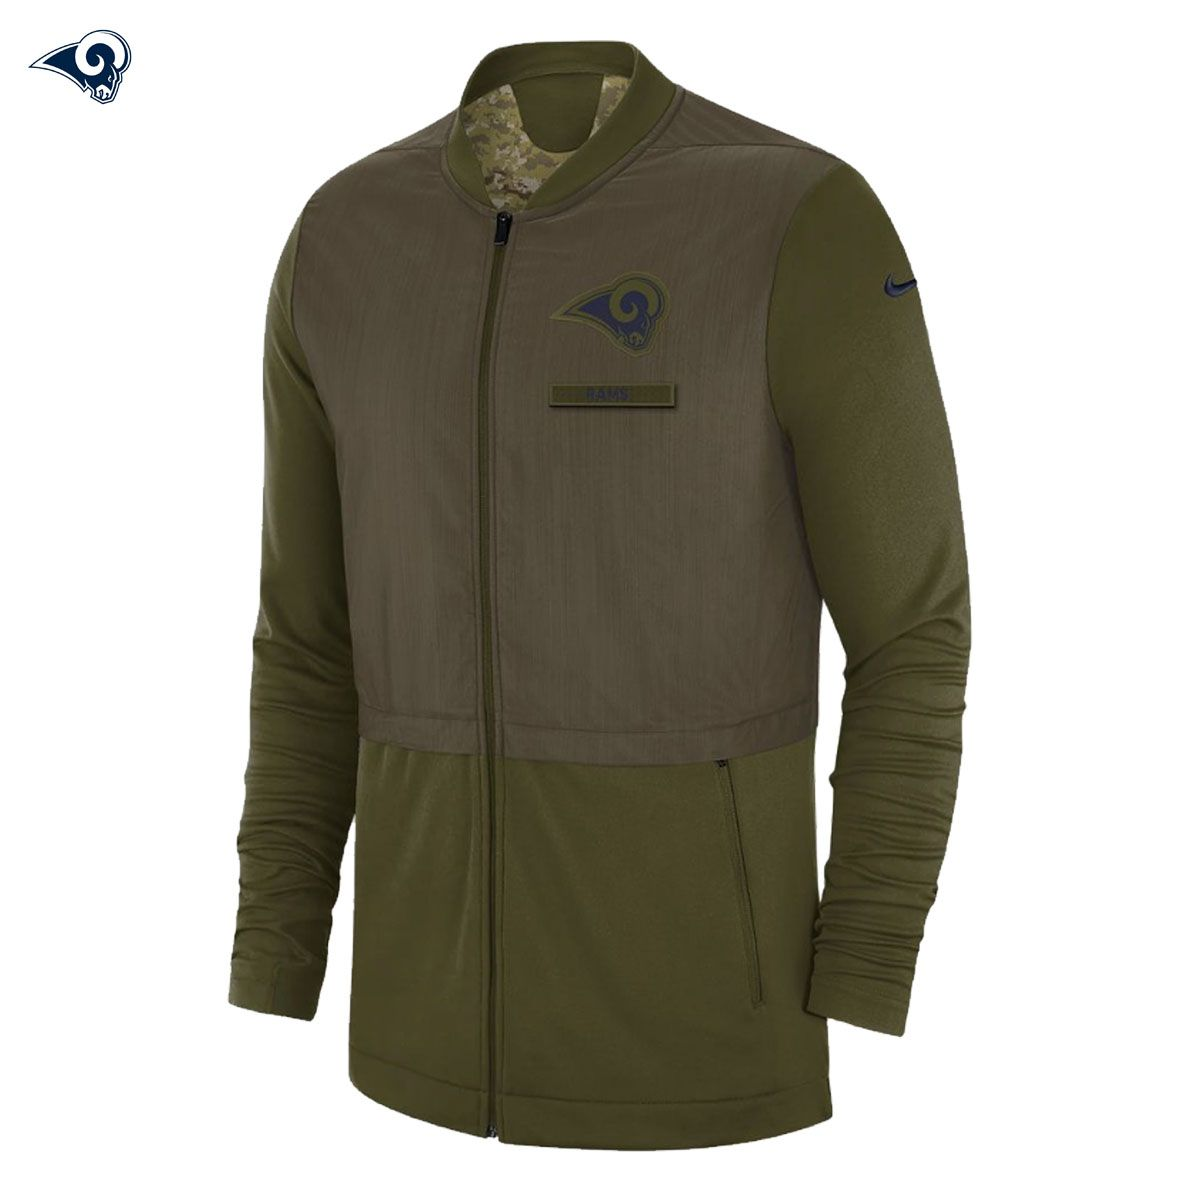 dbe1eab6a NEW Nike 2018 NFL Salute to Service Los Angeles Rams Hybrid Jacket Limited  NWT Salute The Troops! The NEW 2018 Salute To service Line Is Finally Here!